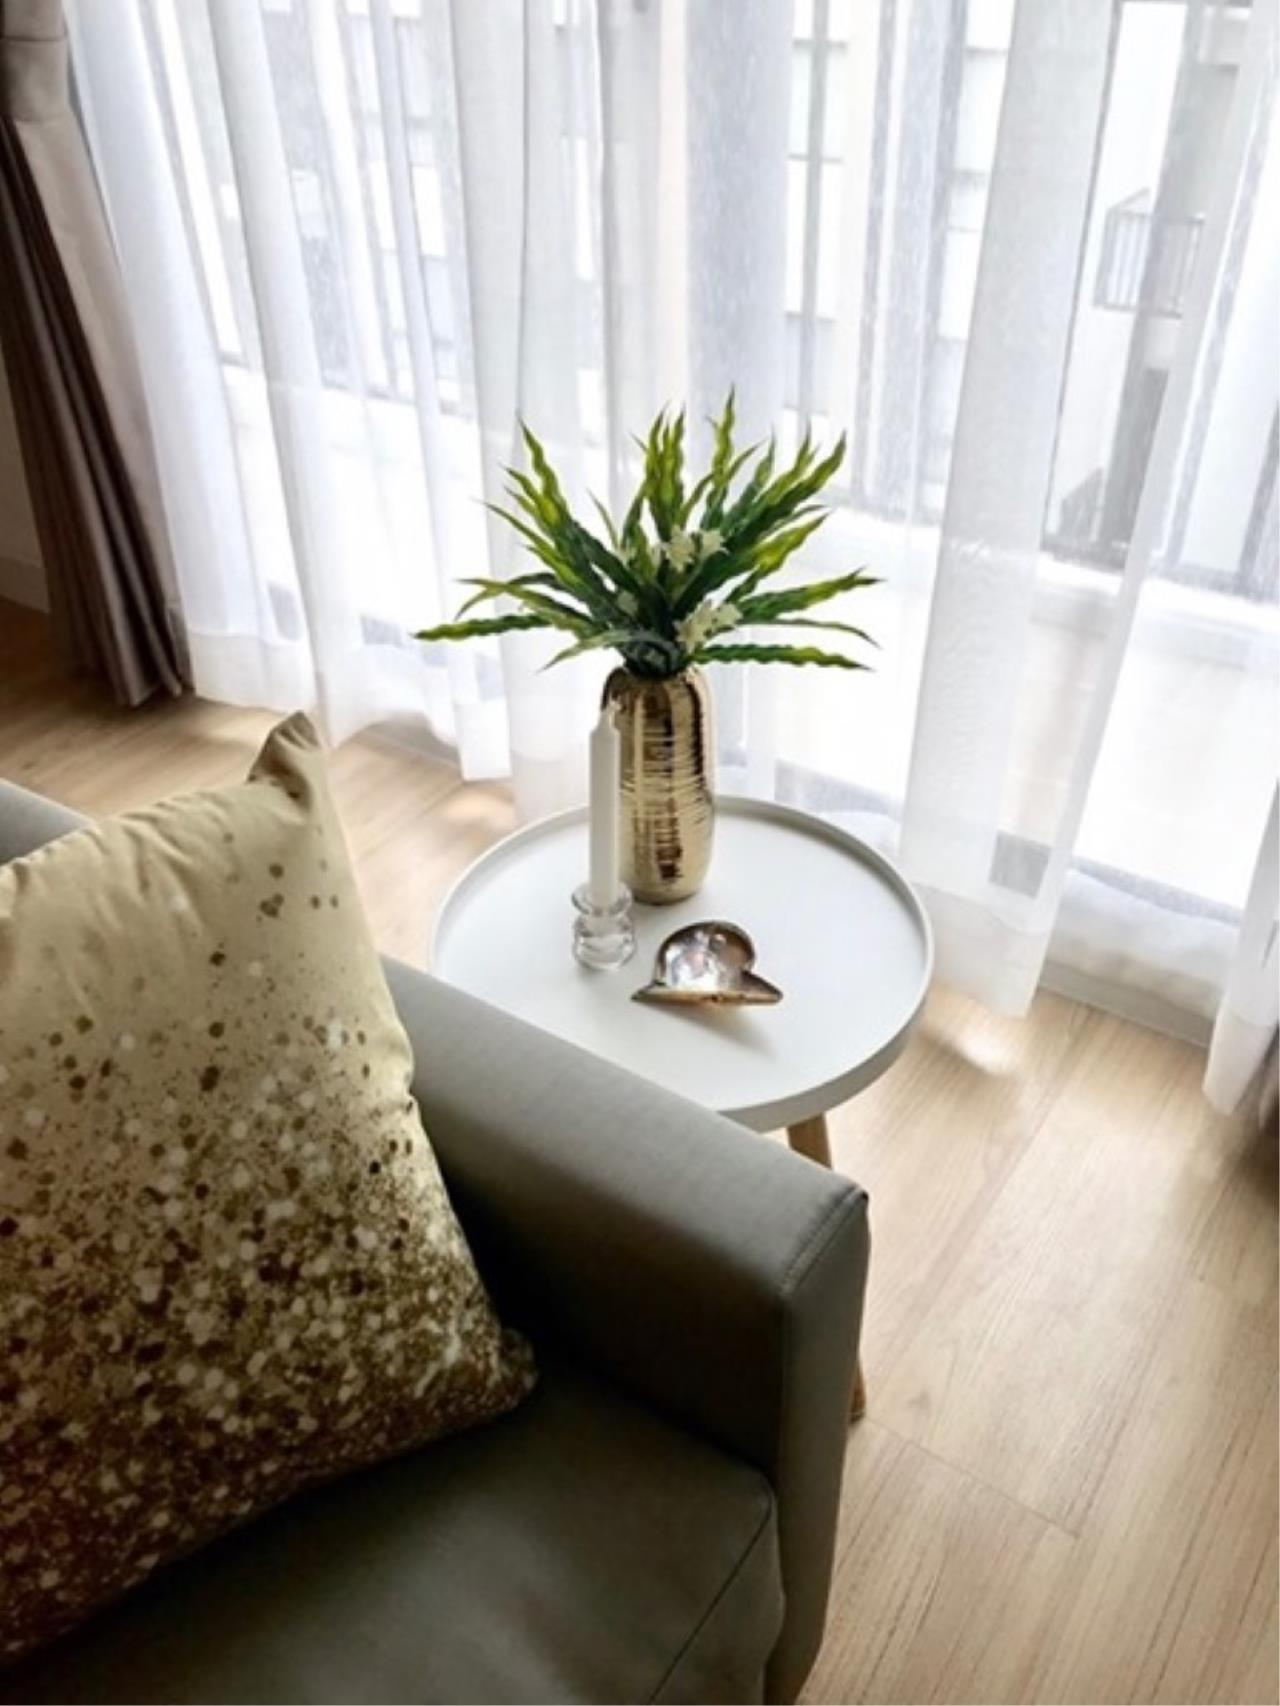 Century21 Skylux Agency's The Nest Sukhumvit 22 / Condo For Rent / 1 Bedroom / 25 SQM / MRT Queen Sirikit National Convention Centre / Bangkok 10